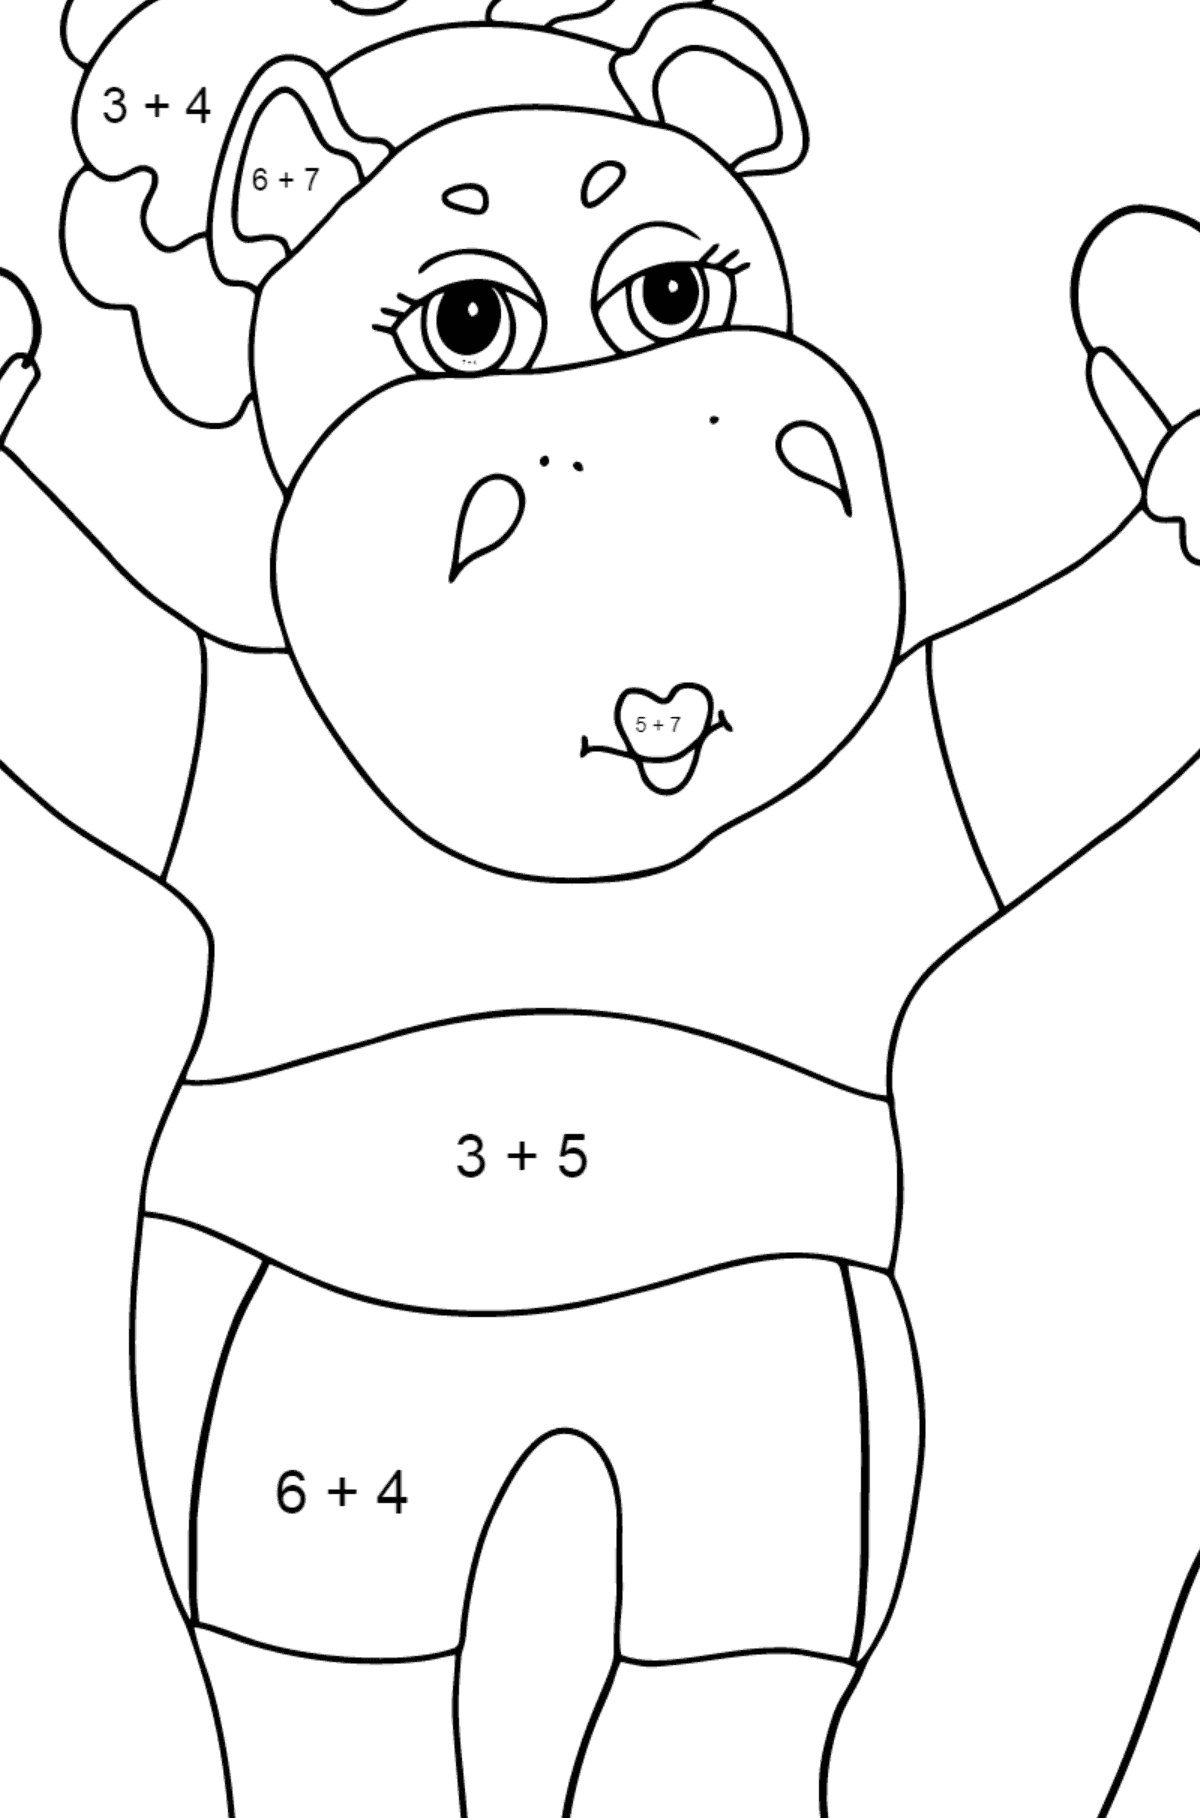 Coloring Page - A Hippo with a Jump Rope for Children  - Color by Number Addition